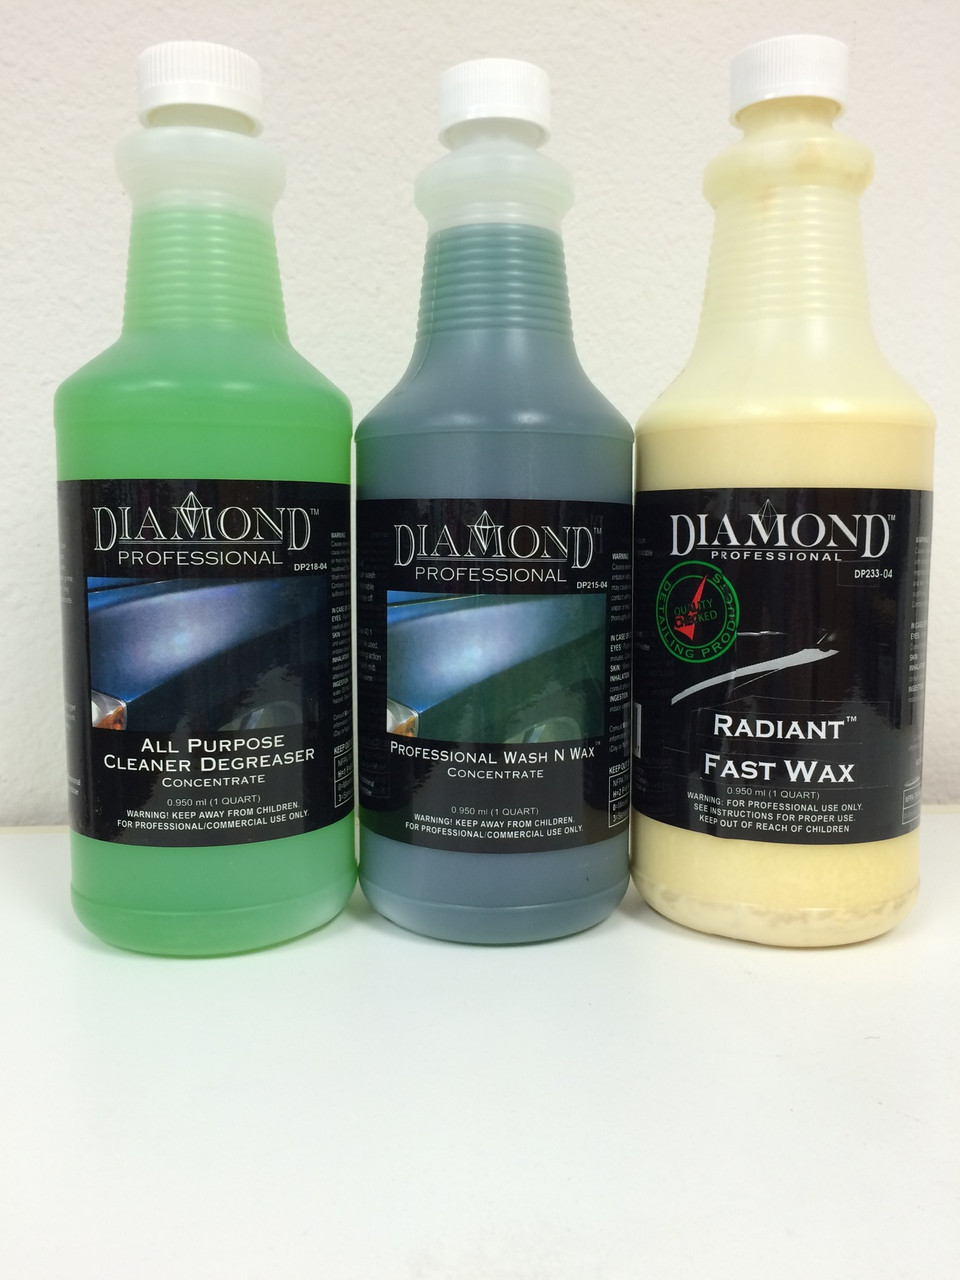 """Taking care of your car is made easy with these 3 easy steps--cleaning, washing and protecting.  We recommend this kit for those detail jobs that need a little extra """"elbow grease"""" on the exterior.  Let Diamond Professional products do the work for you!  You can prolong the beauty of your car at a discounted price with just 3 products.  We've included some of our most effective products in our 1-2-3 Degreaser Kit (quart sizes):  All Purpose Cleaner Degreaser removes road grime deposits and is also excellent as an engine, undercarriage and tire cleaner. (Please note dilution recommendations for consistent results.) Professional Wash 'N Wax rinses off road film and soap easily, leaving a lustrous shine while brightening chrome and glass beautifully. (Please note dilution recommendations for consistent results.) Radiant Fast Wax protects paint finish from environmental elements while still safe to use on vinyl moldings as well as stripes and decals."""